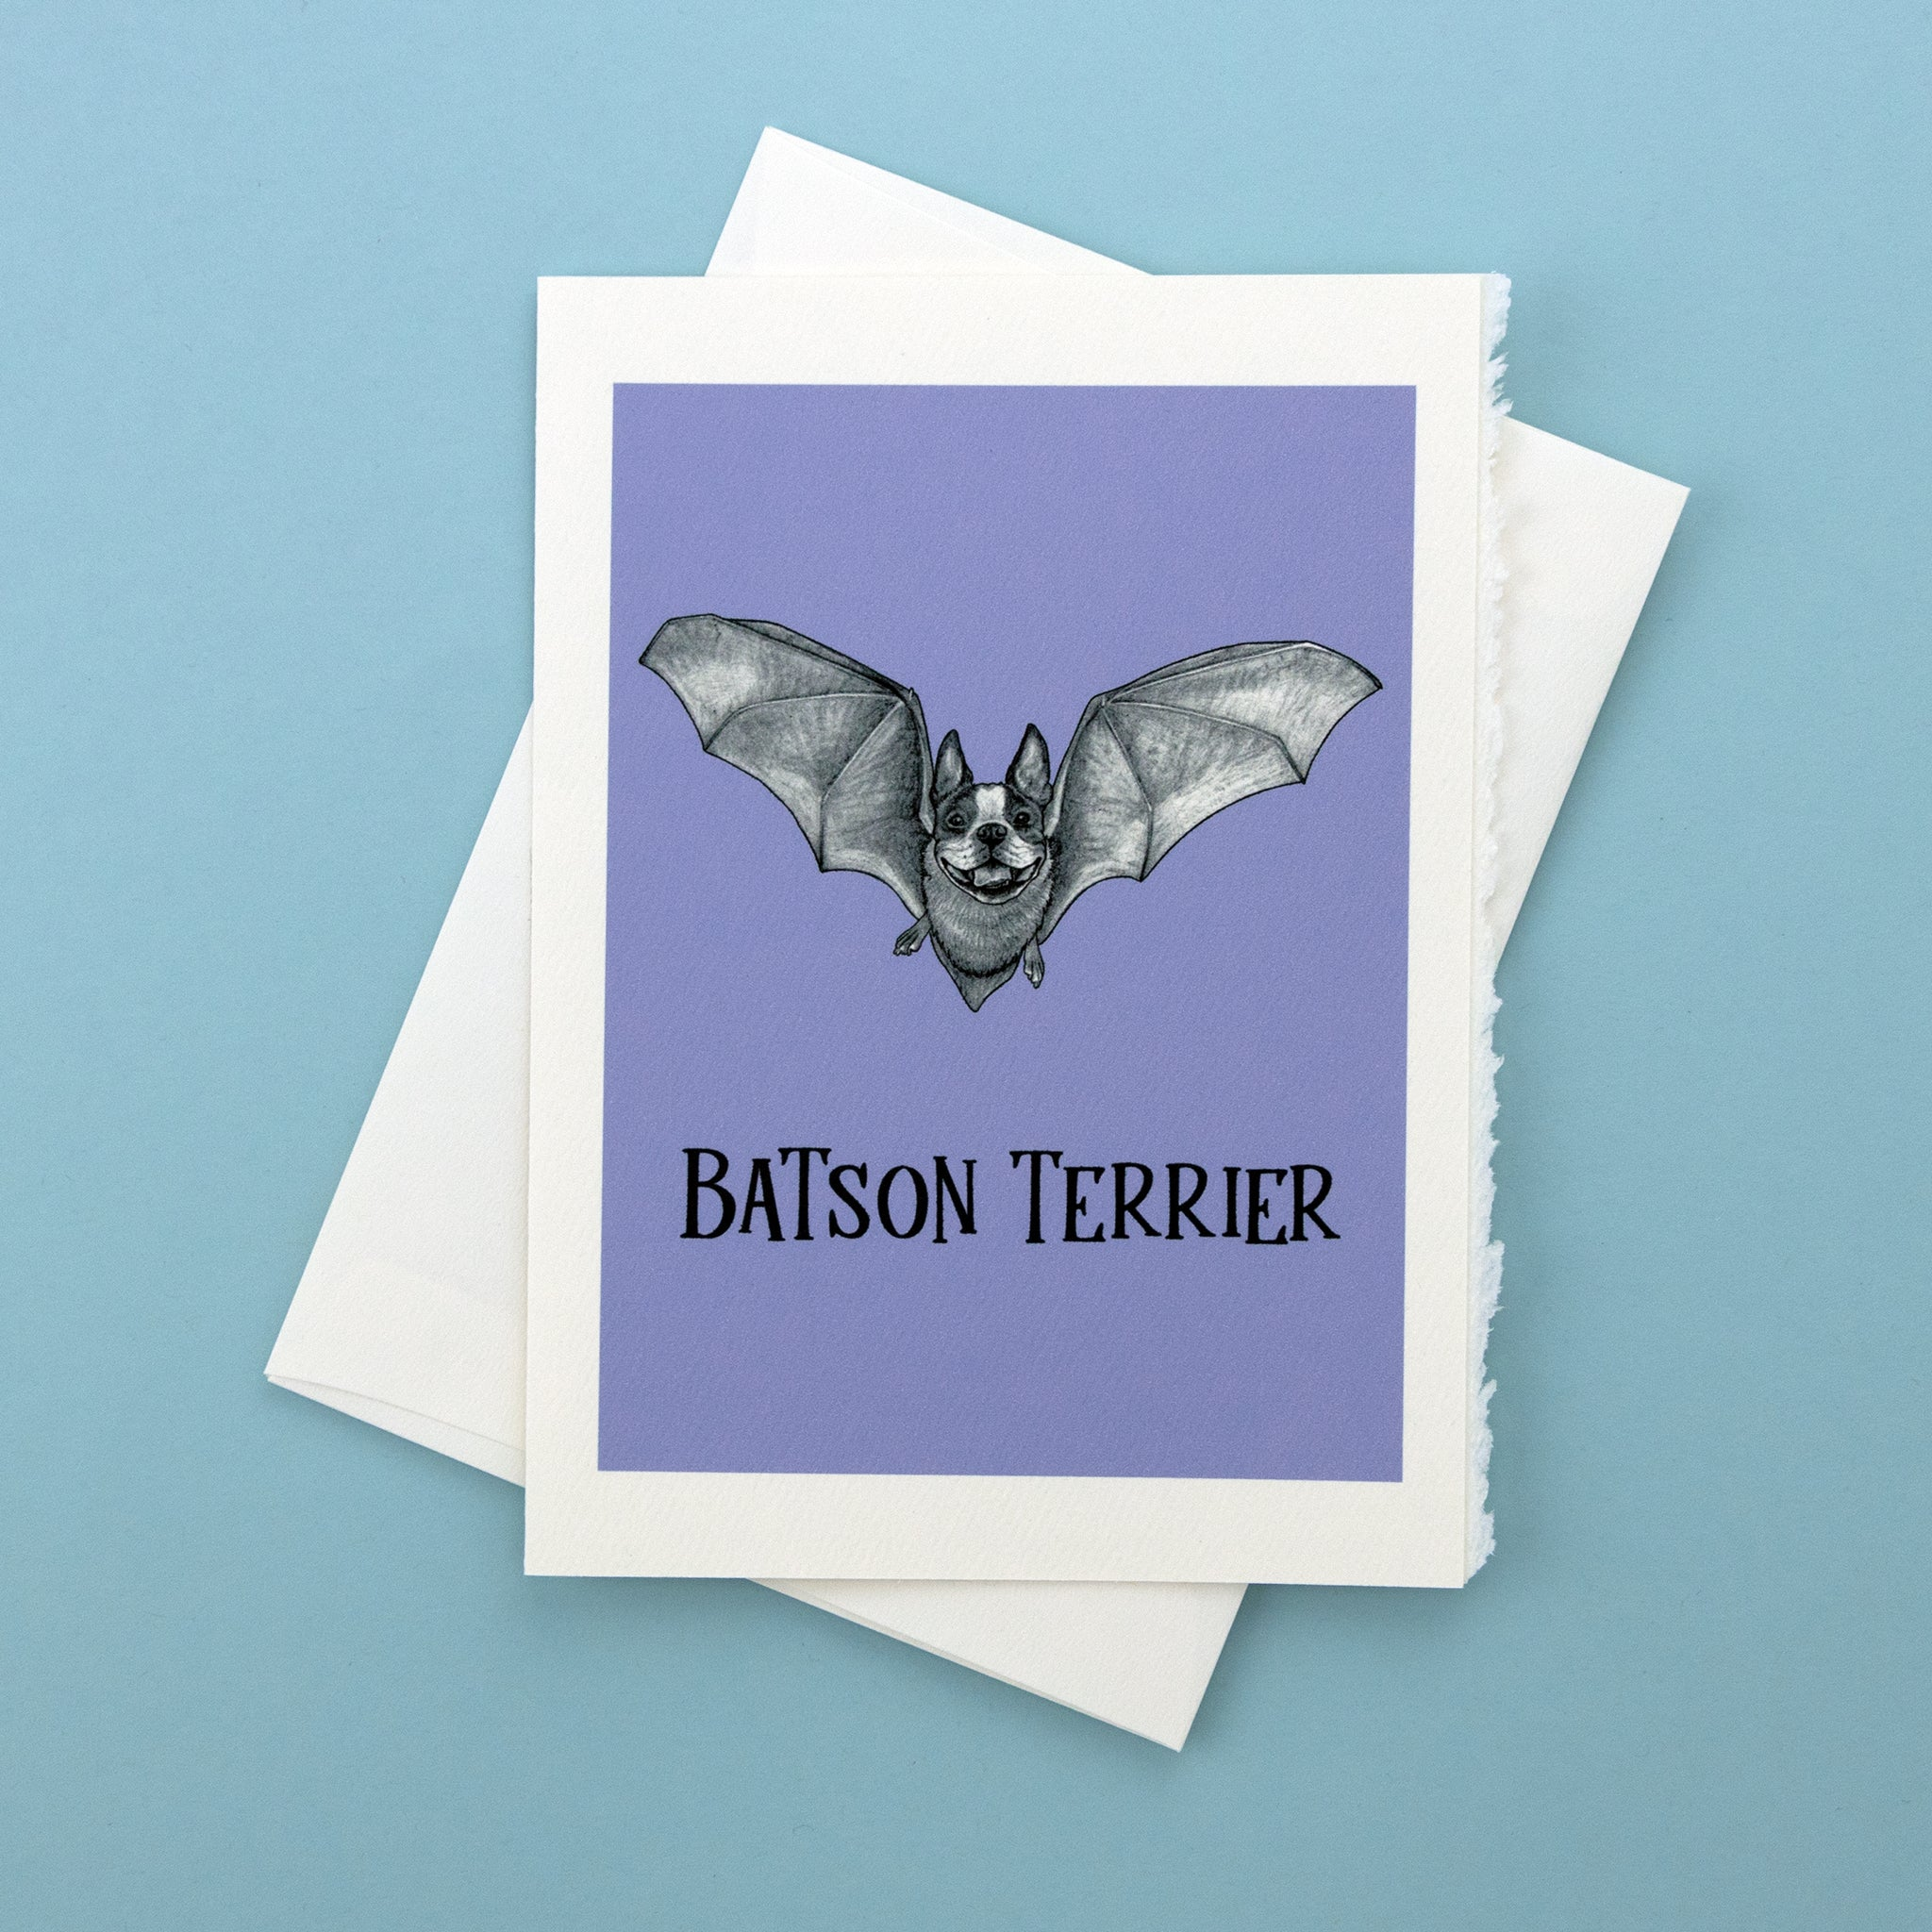 "Batson Terrier 5x7"" Greeting Card"